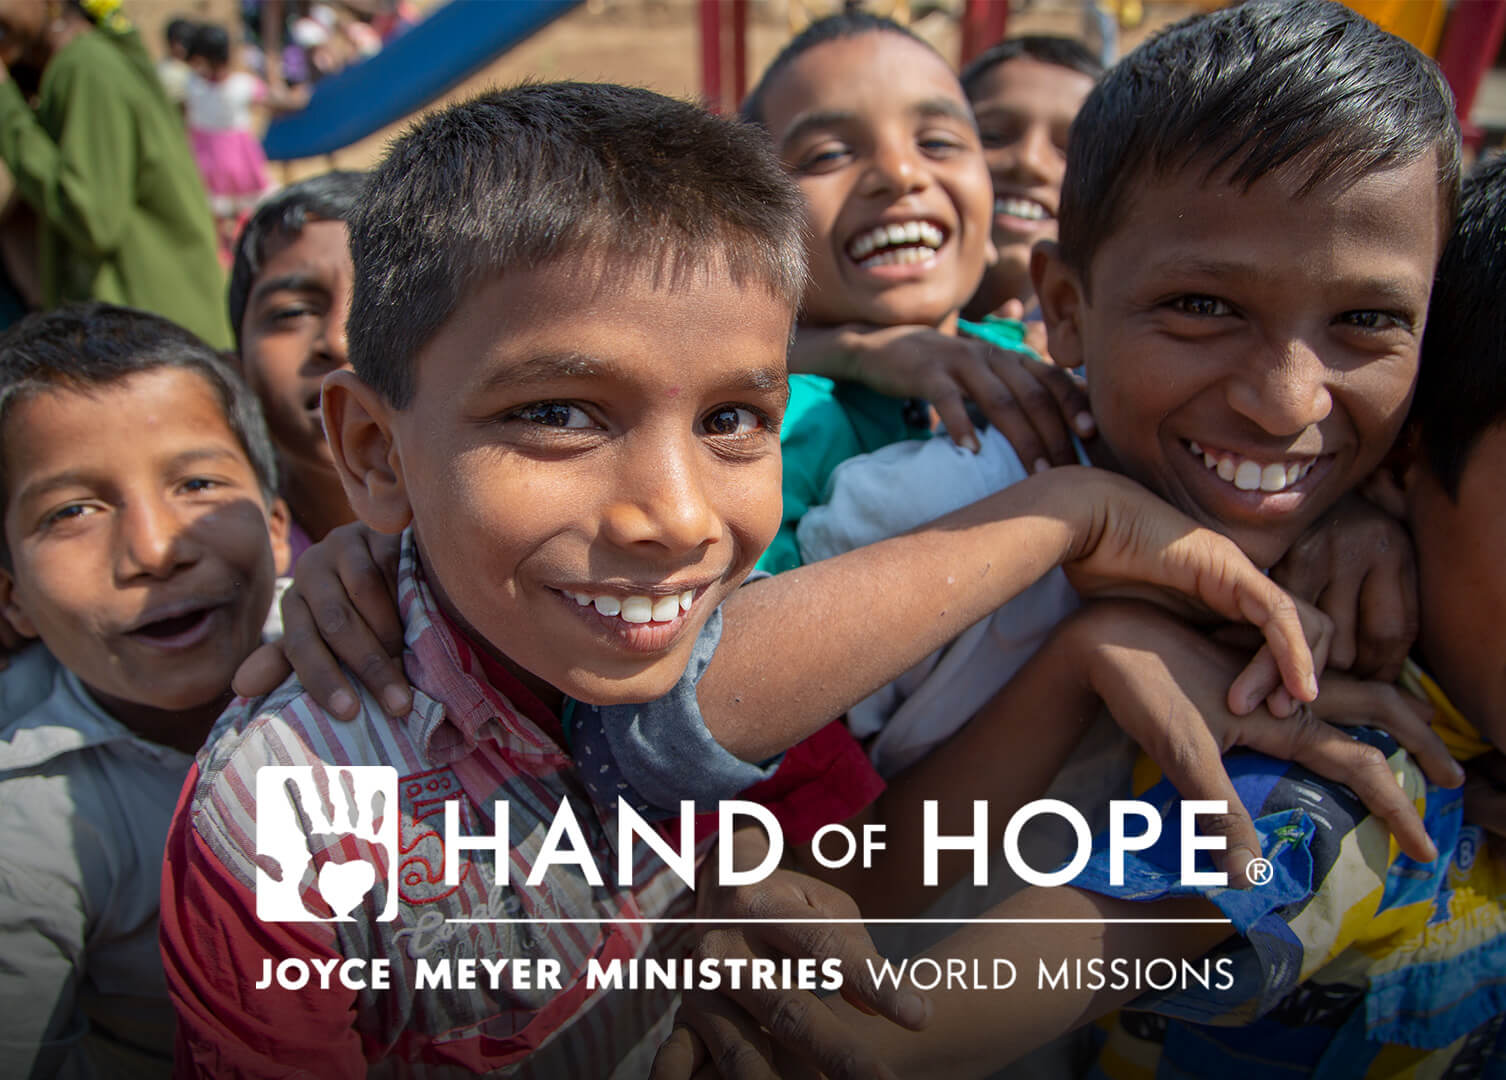 Hand of Hope - Learn More